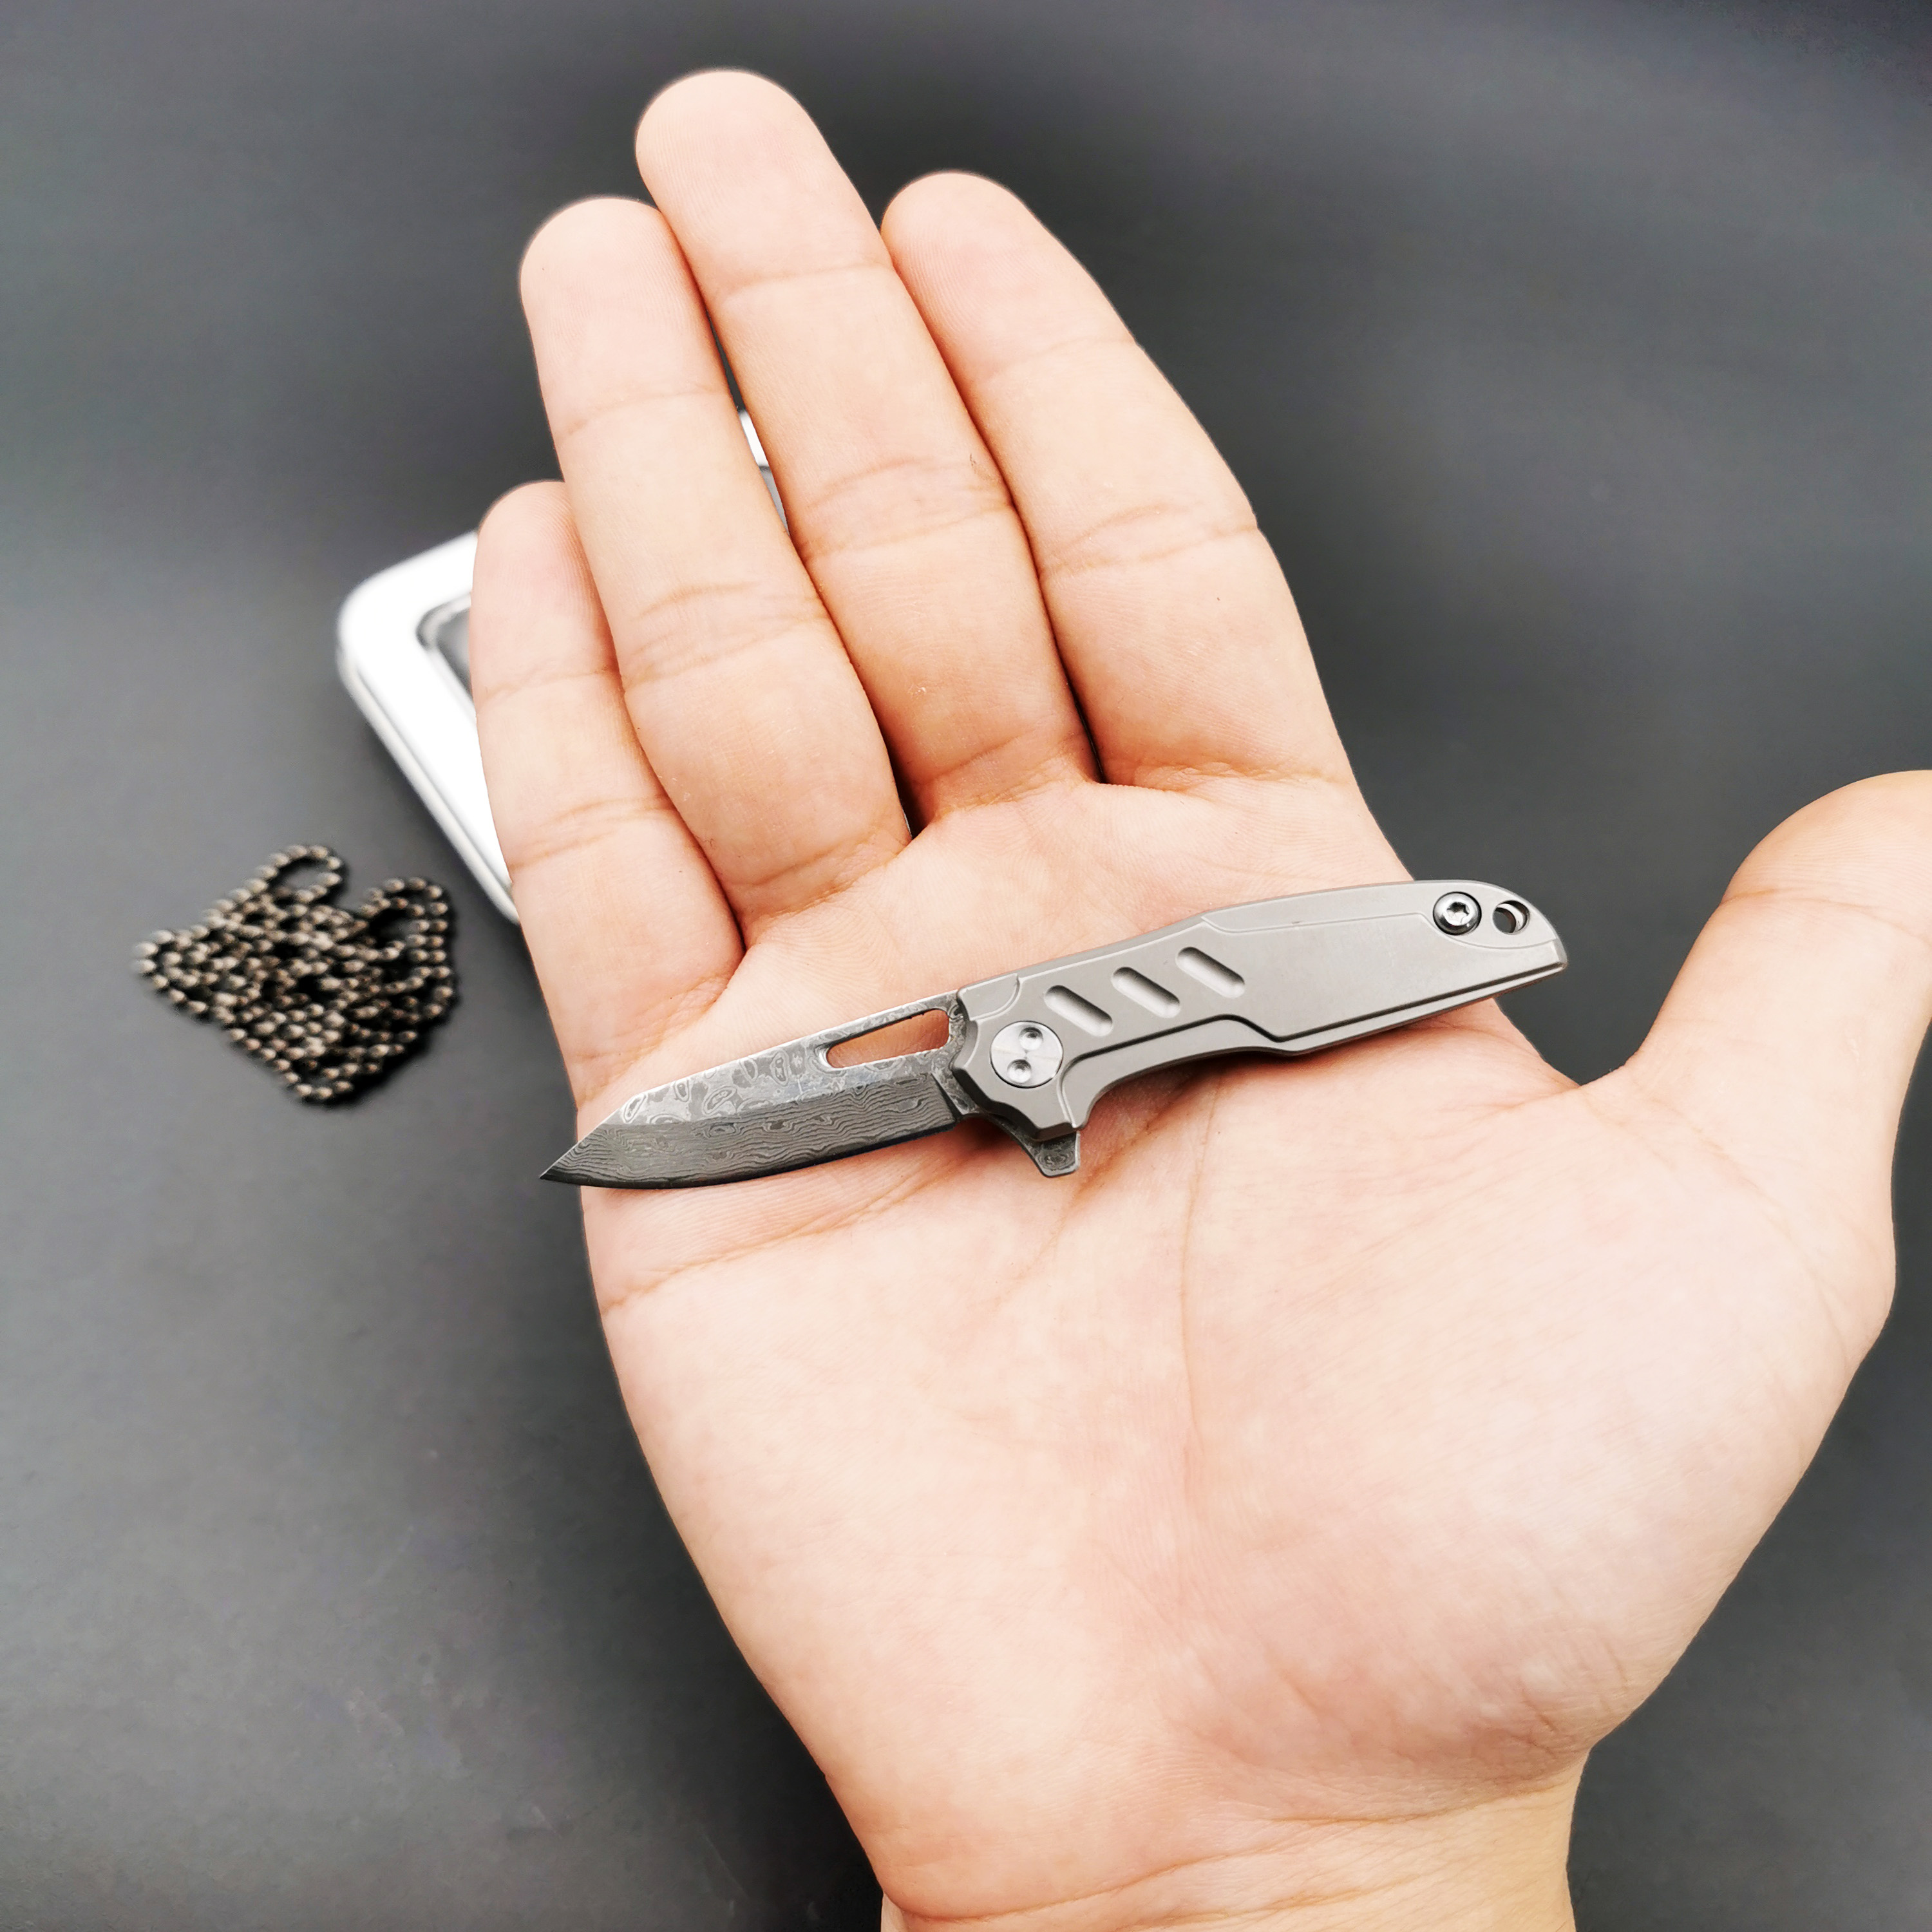 Mini Folding Knife D2 Damascus Blade Steel TC4 Titanium Handle Outdoor Camping Survival Diving Gift Knives Tactical EDC Tool in Knives from Tools